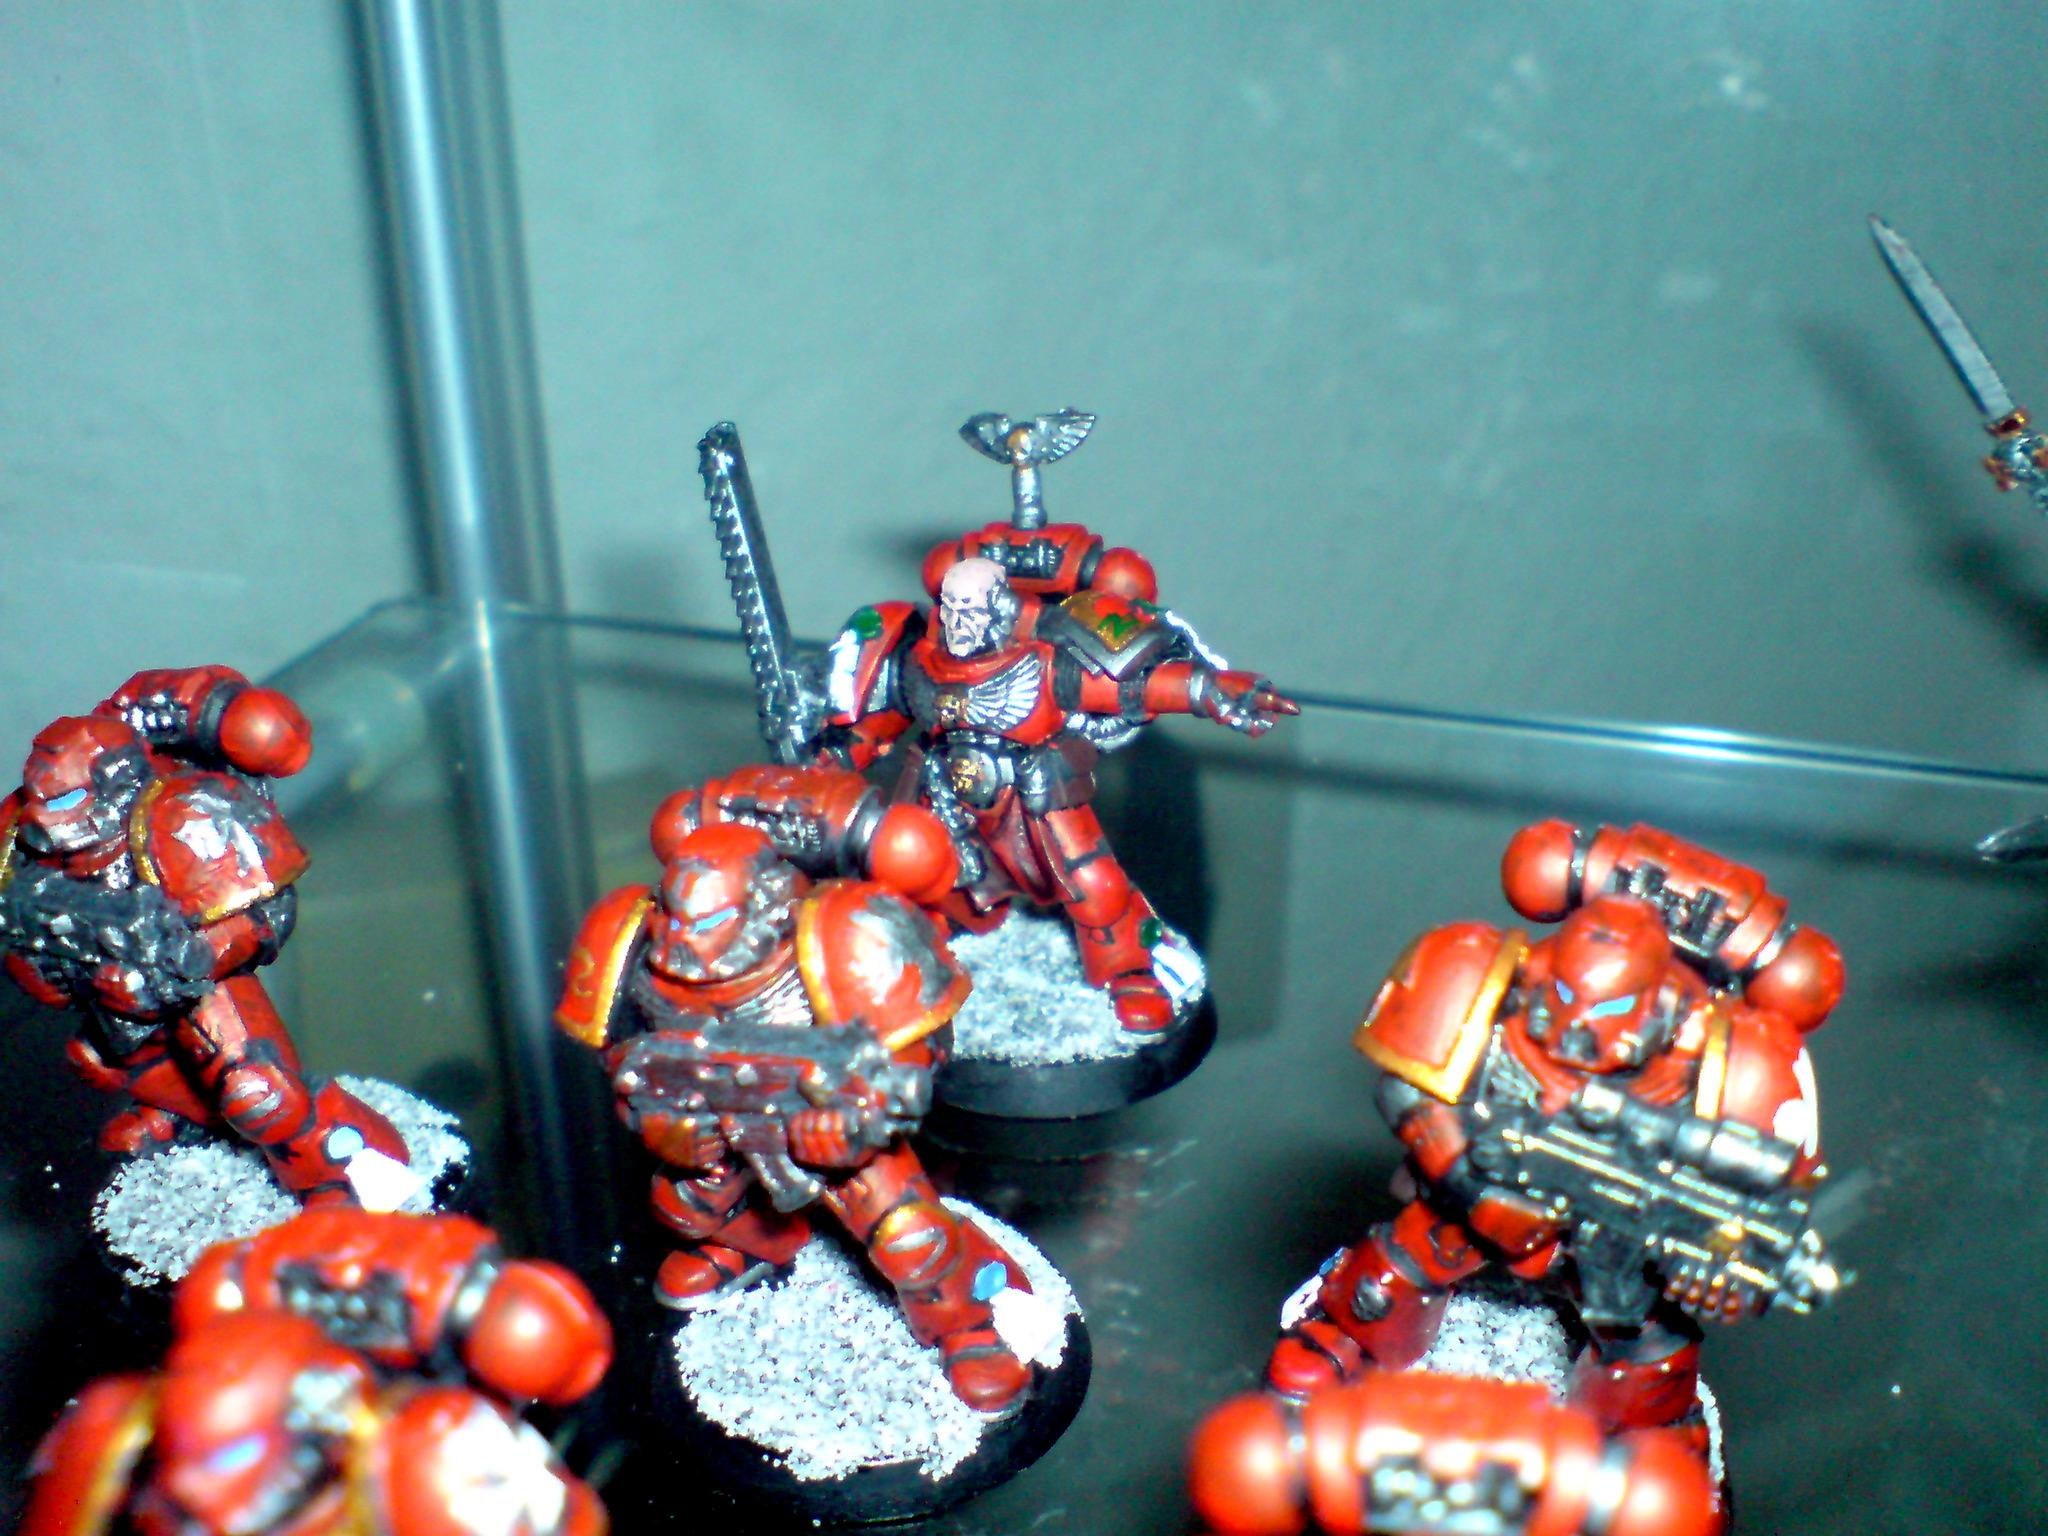 Space Marine 40k, Space Marines, Tactical Squad, Warhammer 40,000